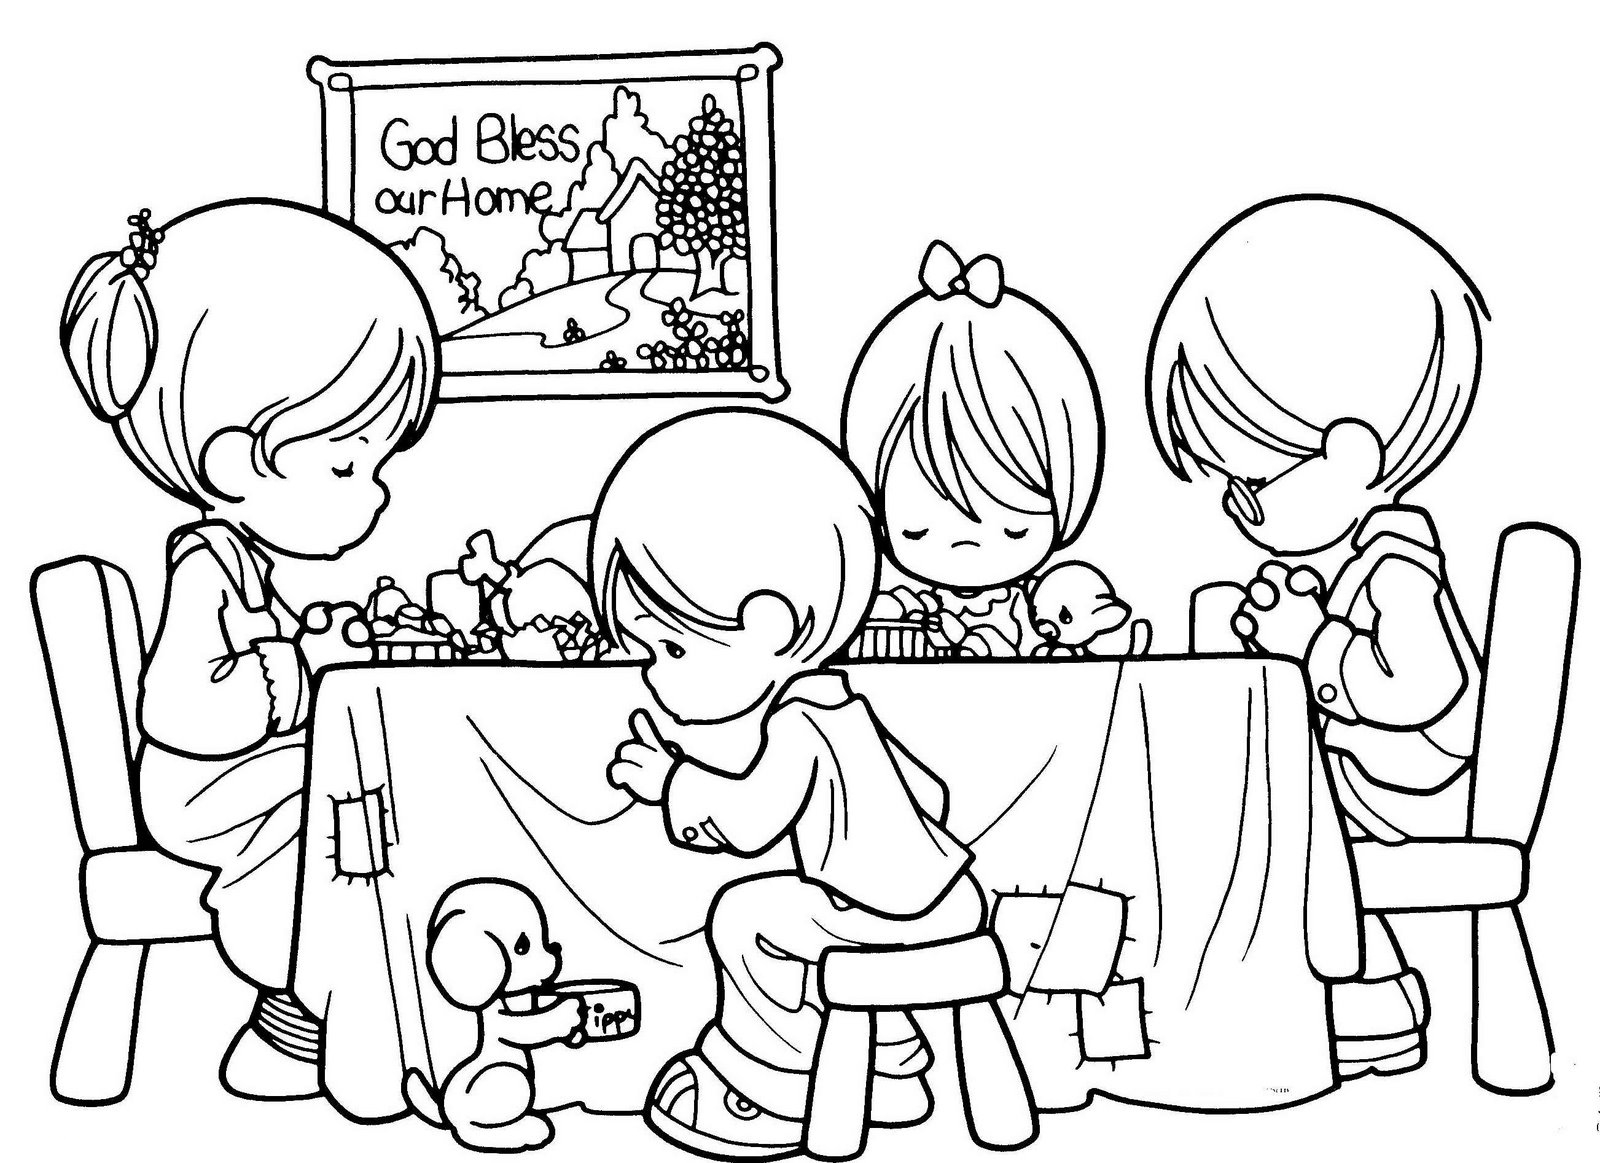 download free christian coloring pages - Coloring Pages Christian